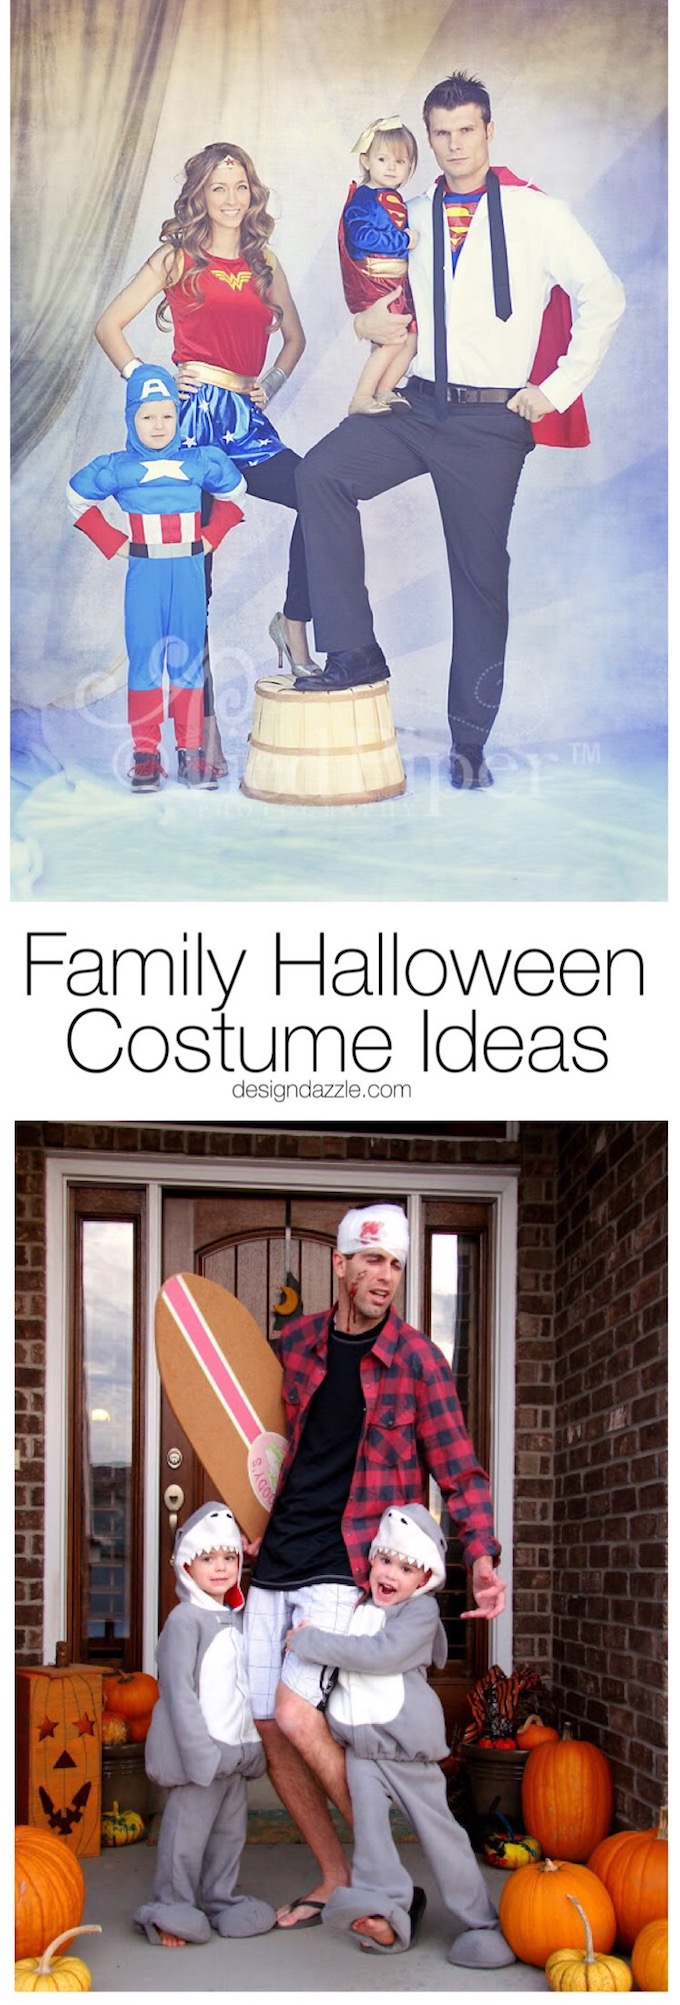 We have some great family Halloween costume ideas for you today, any of which are sure to win you that Halloween costume contest!